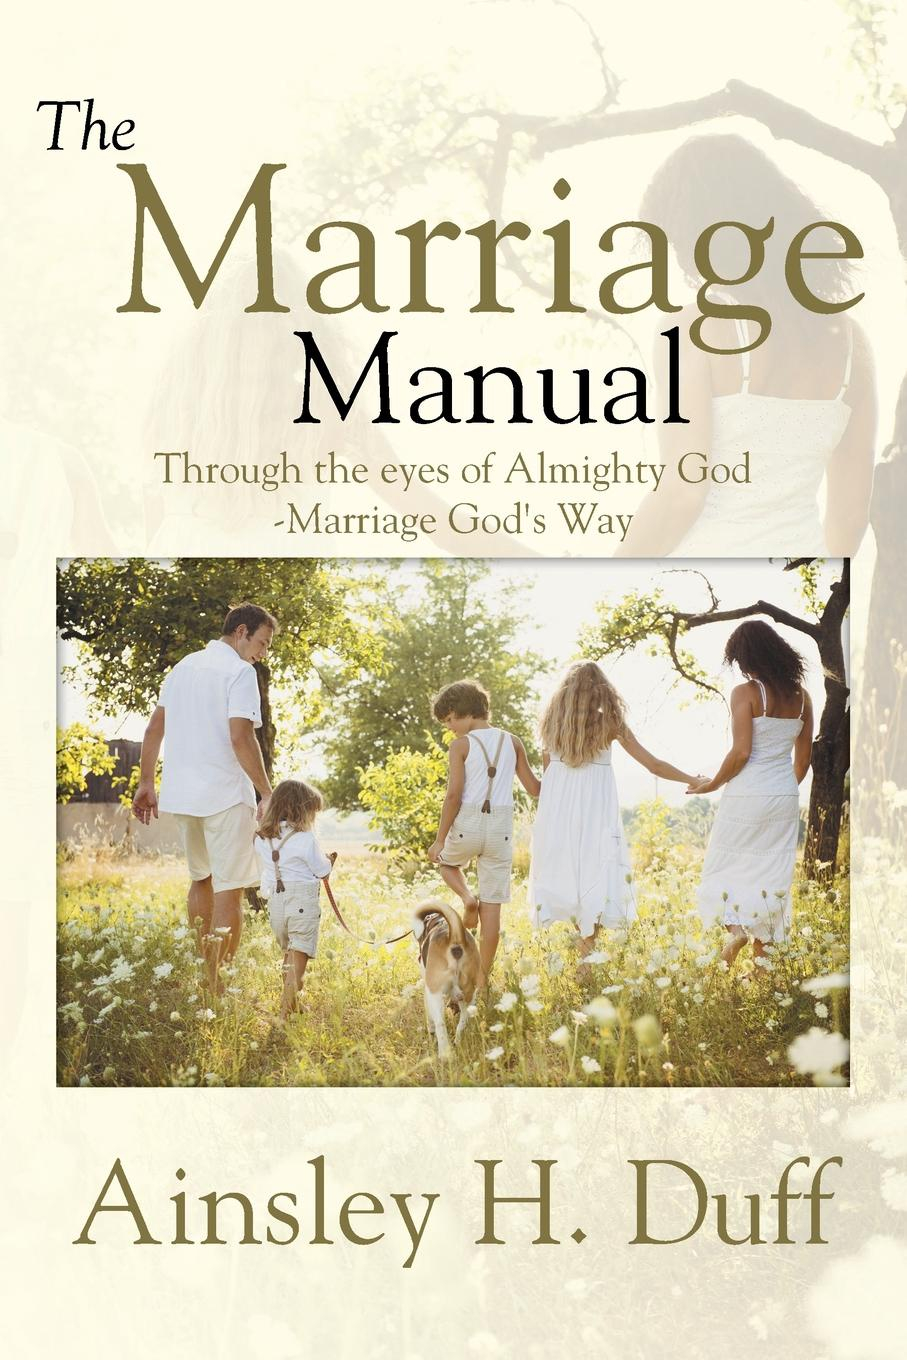 Ainsley H. Duff THE MARRIAGE MANUAL. Through the eyes of Almighty God-Marriage God's Way alf h walle recovery the native way a therapist s manual pb